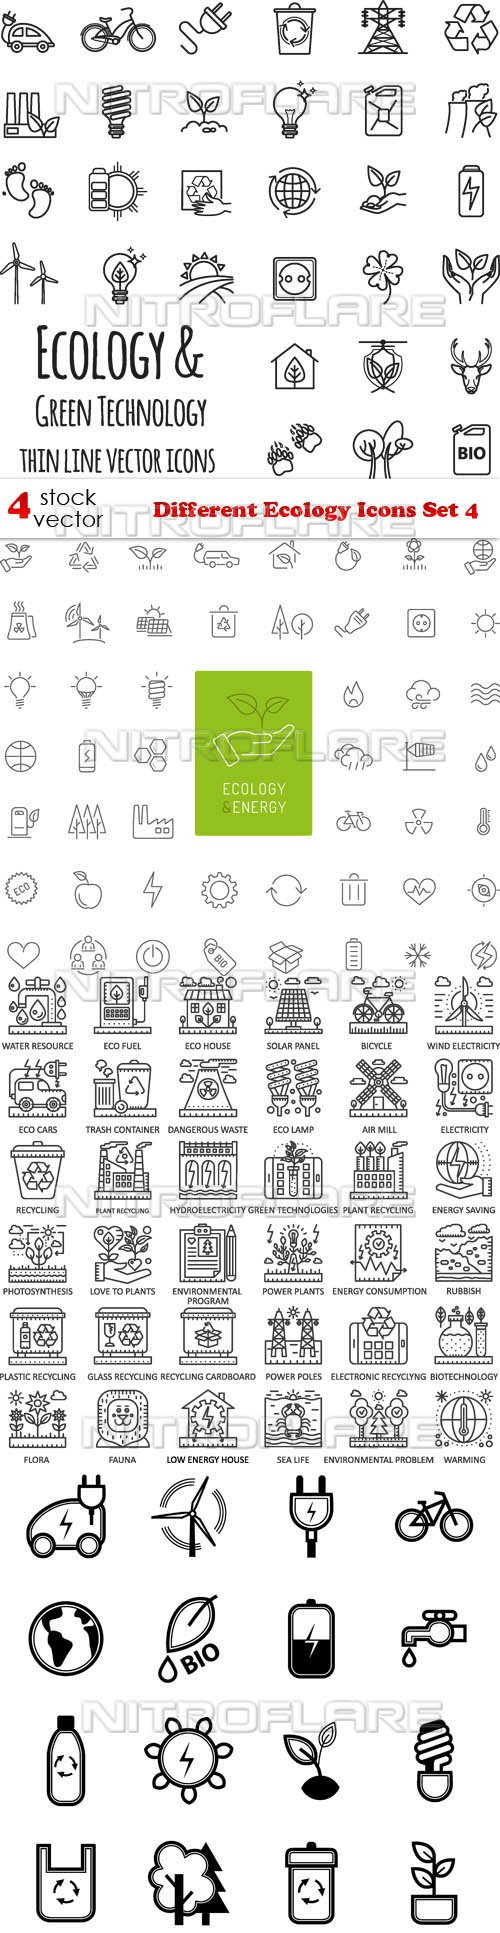 Vectors - Different Ecology Icons Set 4